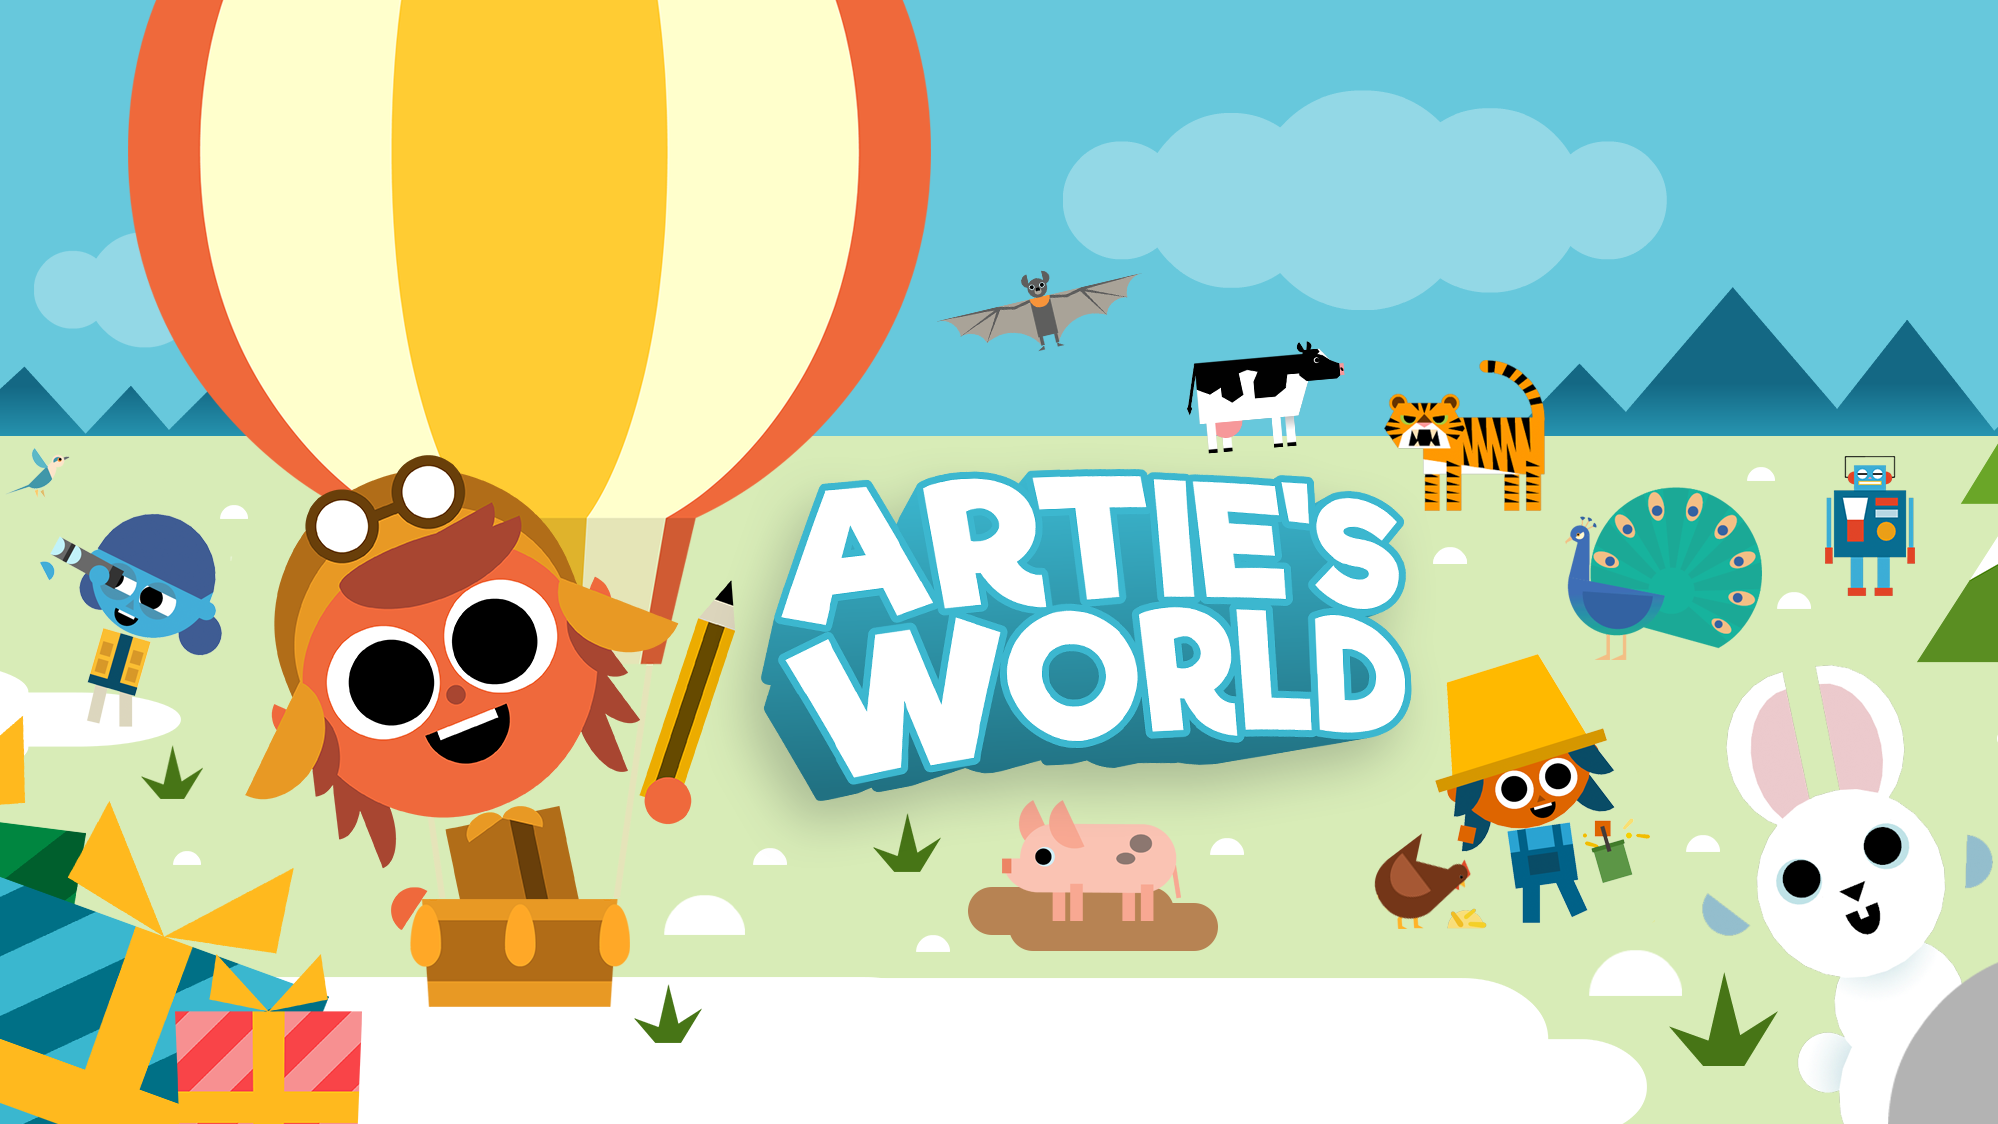 Artie's World Update